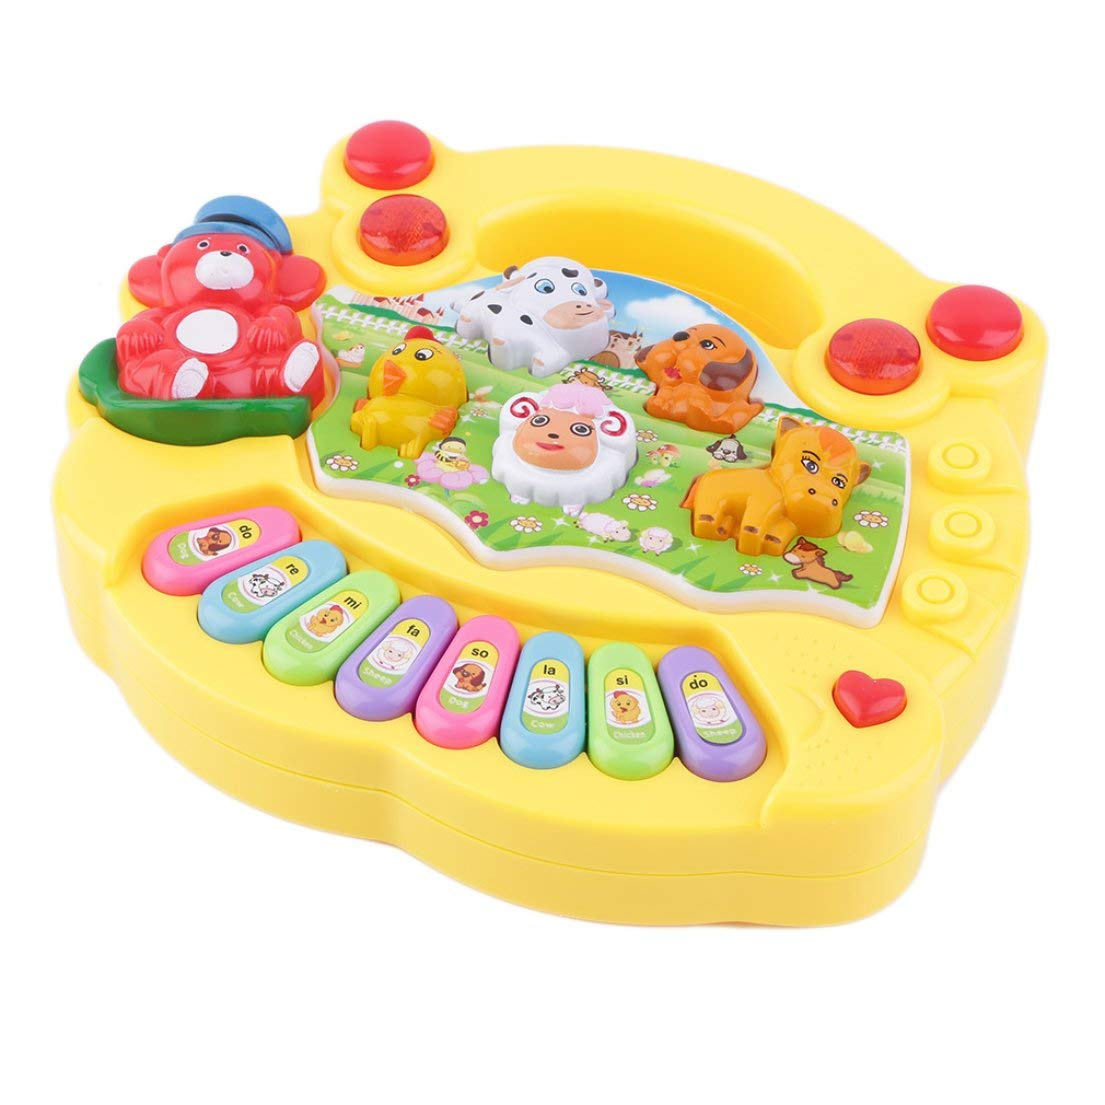 Colorful Baby Kids Musical Educational Piano Animal Farm Pattern Developmental Music Toy Children for Birthday Gift